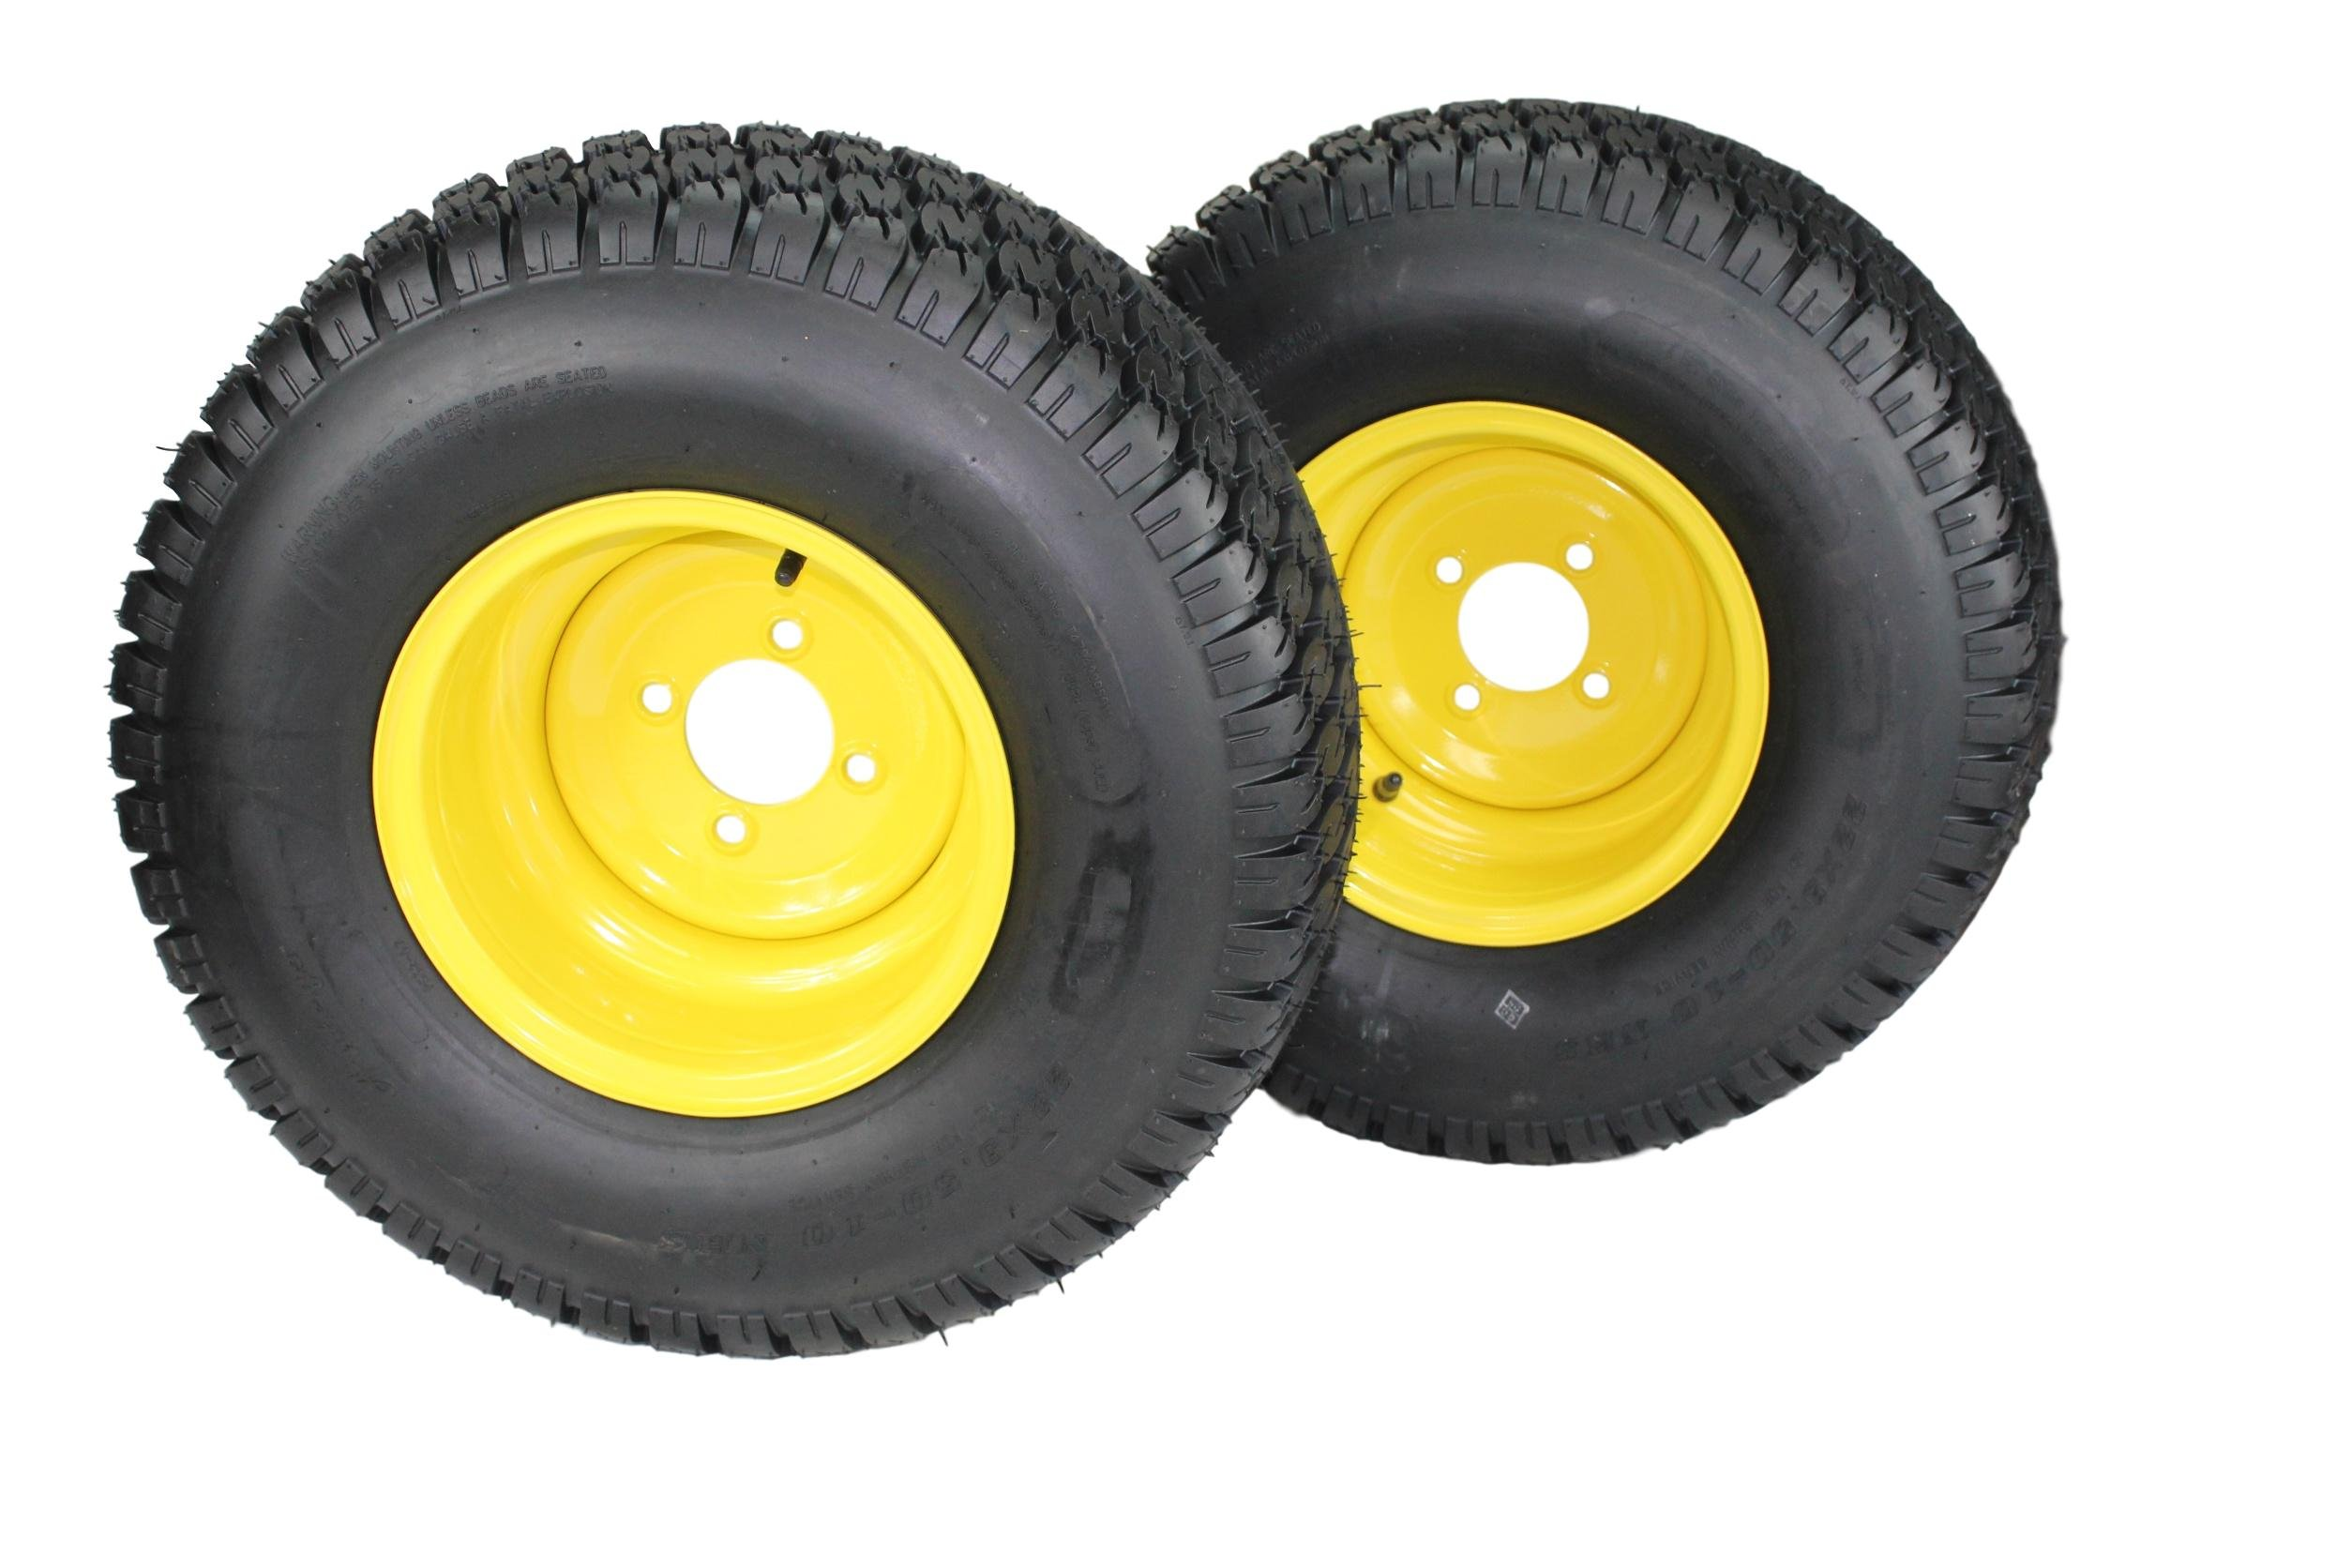 Antego 22x9.50-10 Tires & Wheels 4 Ply for Lawn & Garden Mower Turf Tires (Set of 2)